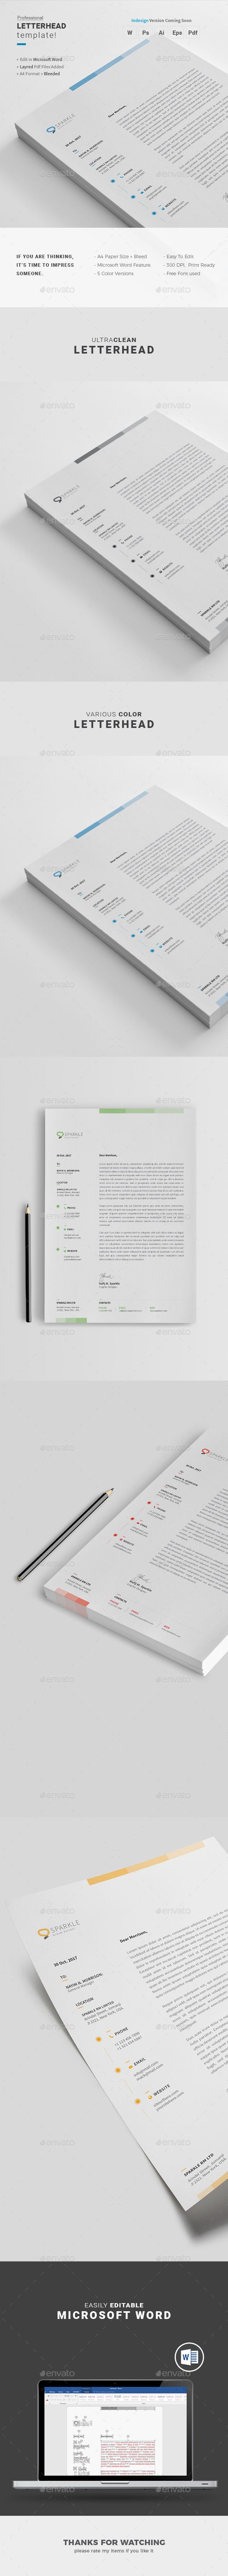 Letterhead template psd vector eps ai ms word letterhead design letterhead template psd vector eps ai ms word letterhead design templates pinterest stationery printing print templates and letterhead template spiritdancerdesigns